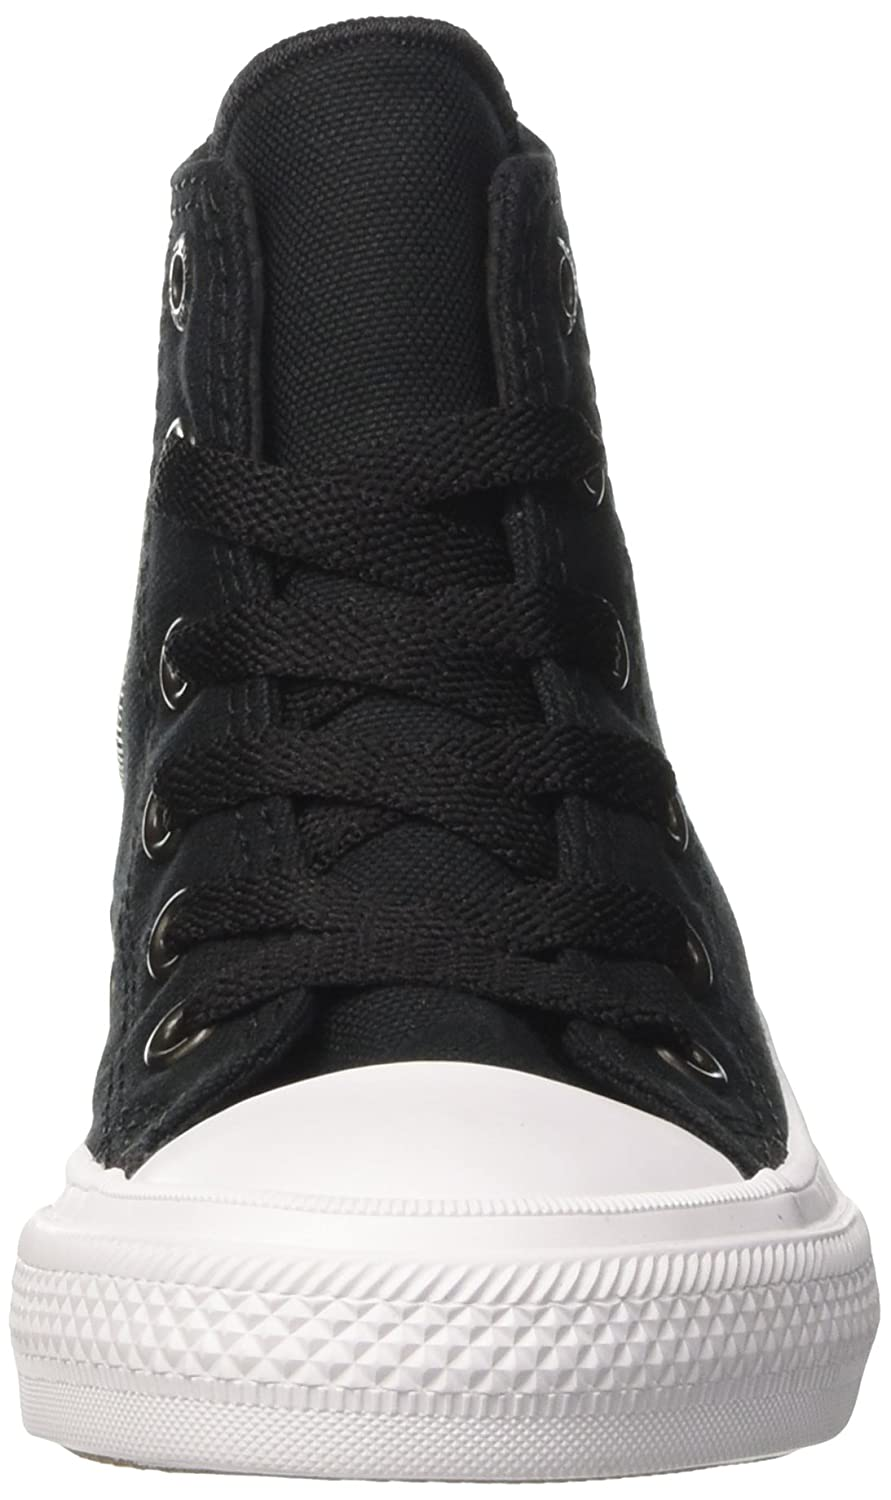 a45d799f8 Amazon.com | Converse Unisex Adults' Chuck Taylor All Star Ii Reflective  Camo Hi-Top Sneakers | Fashion Sneakers